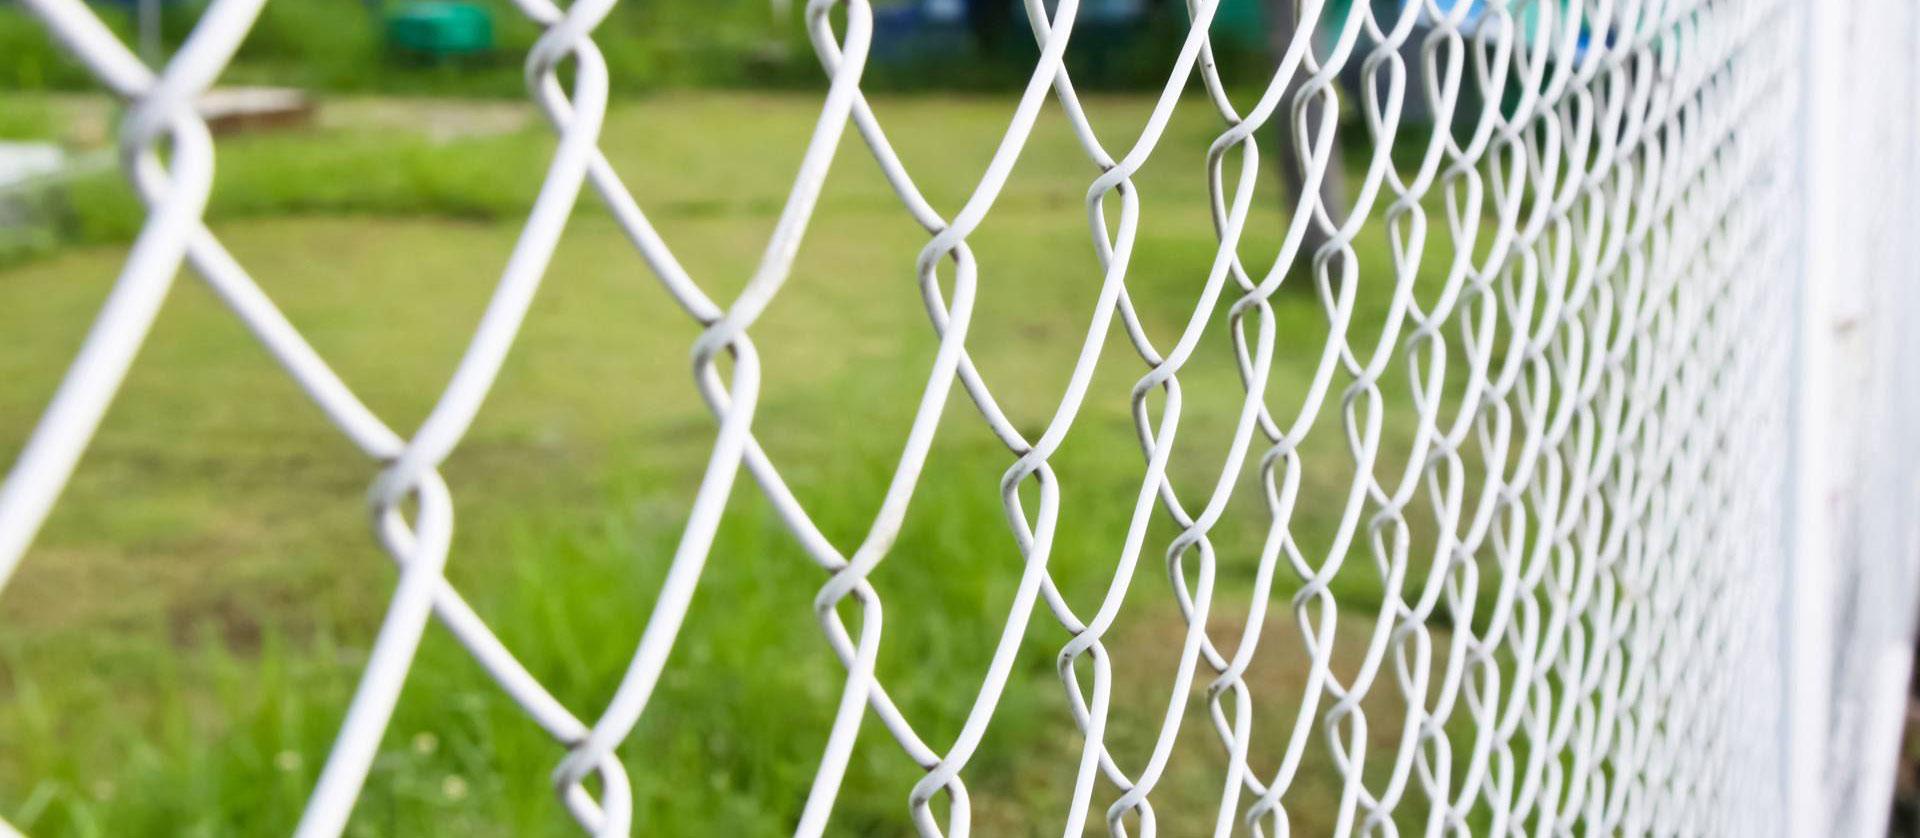 Metalouniverzal produces all kinds of wire fences.